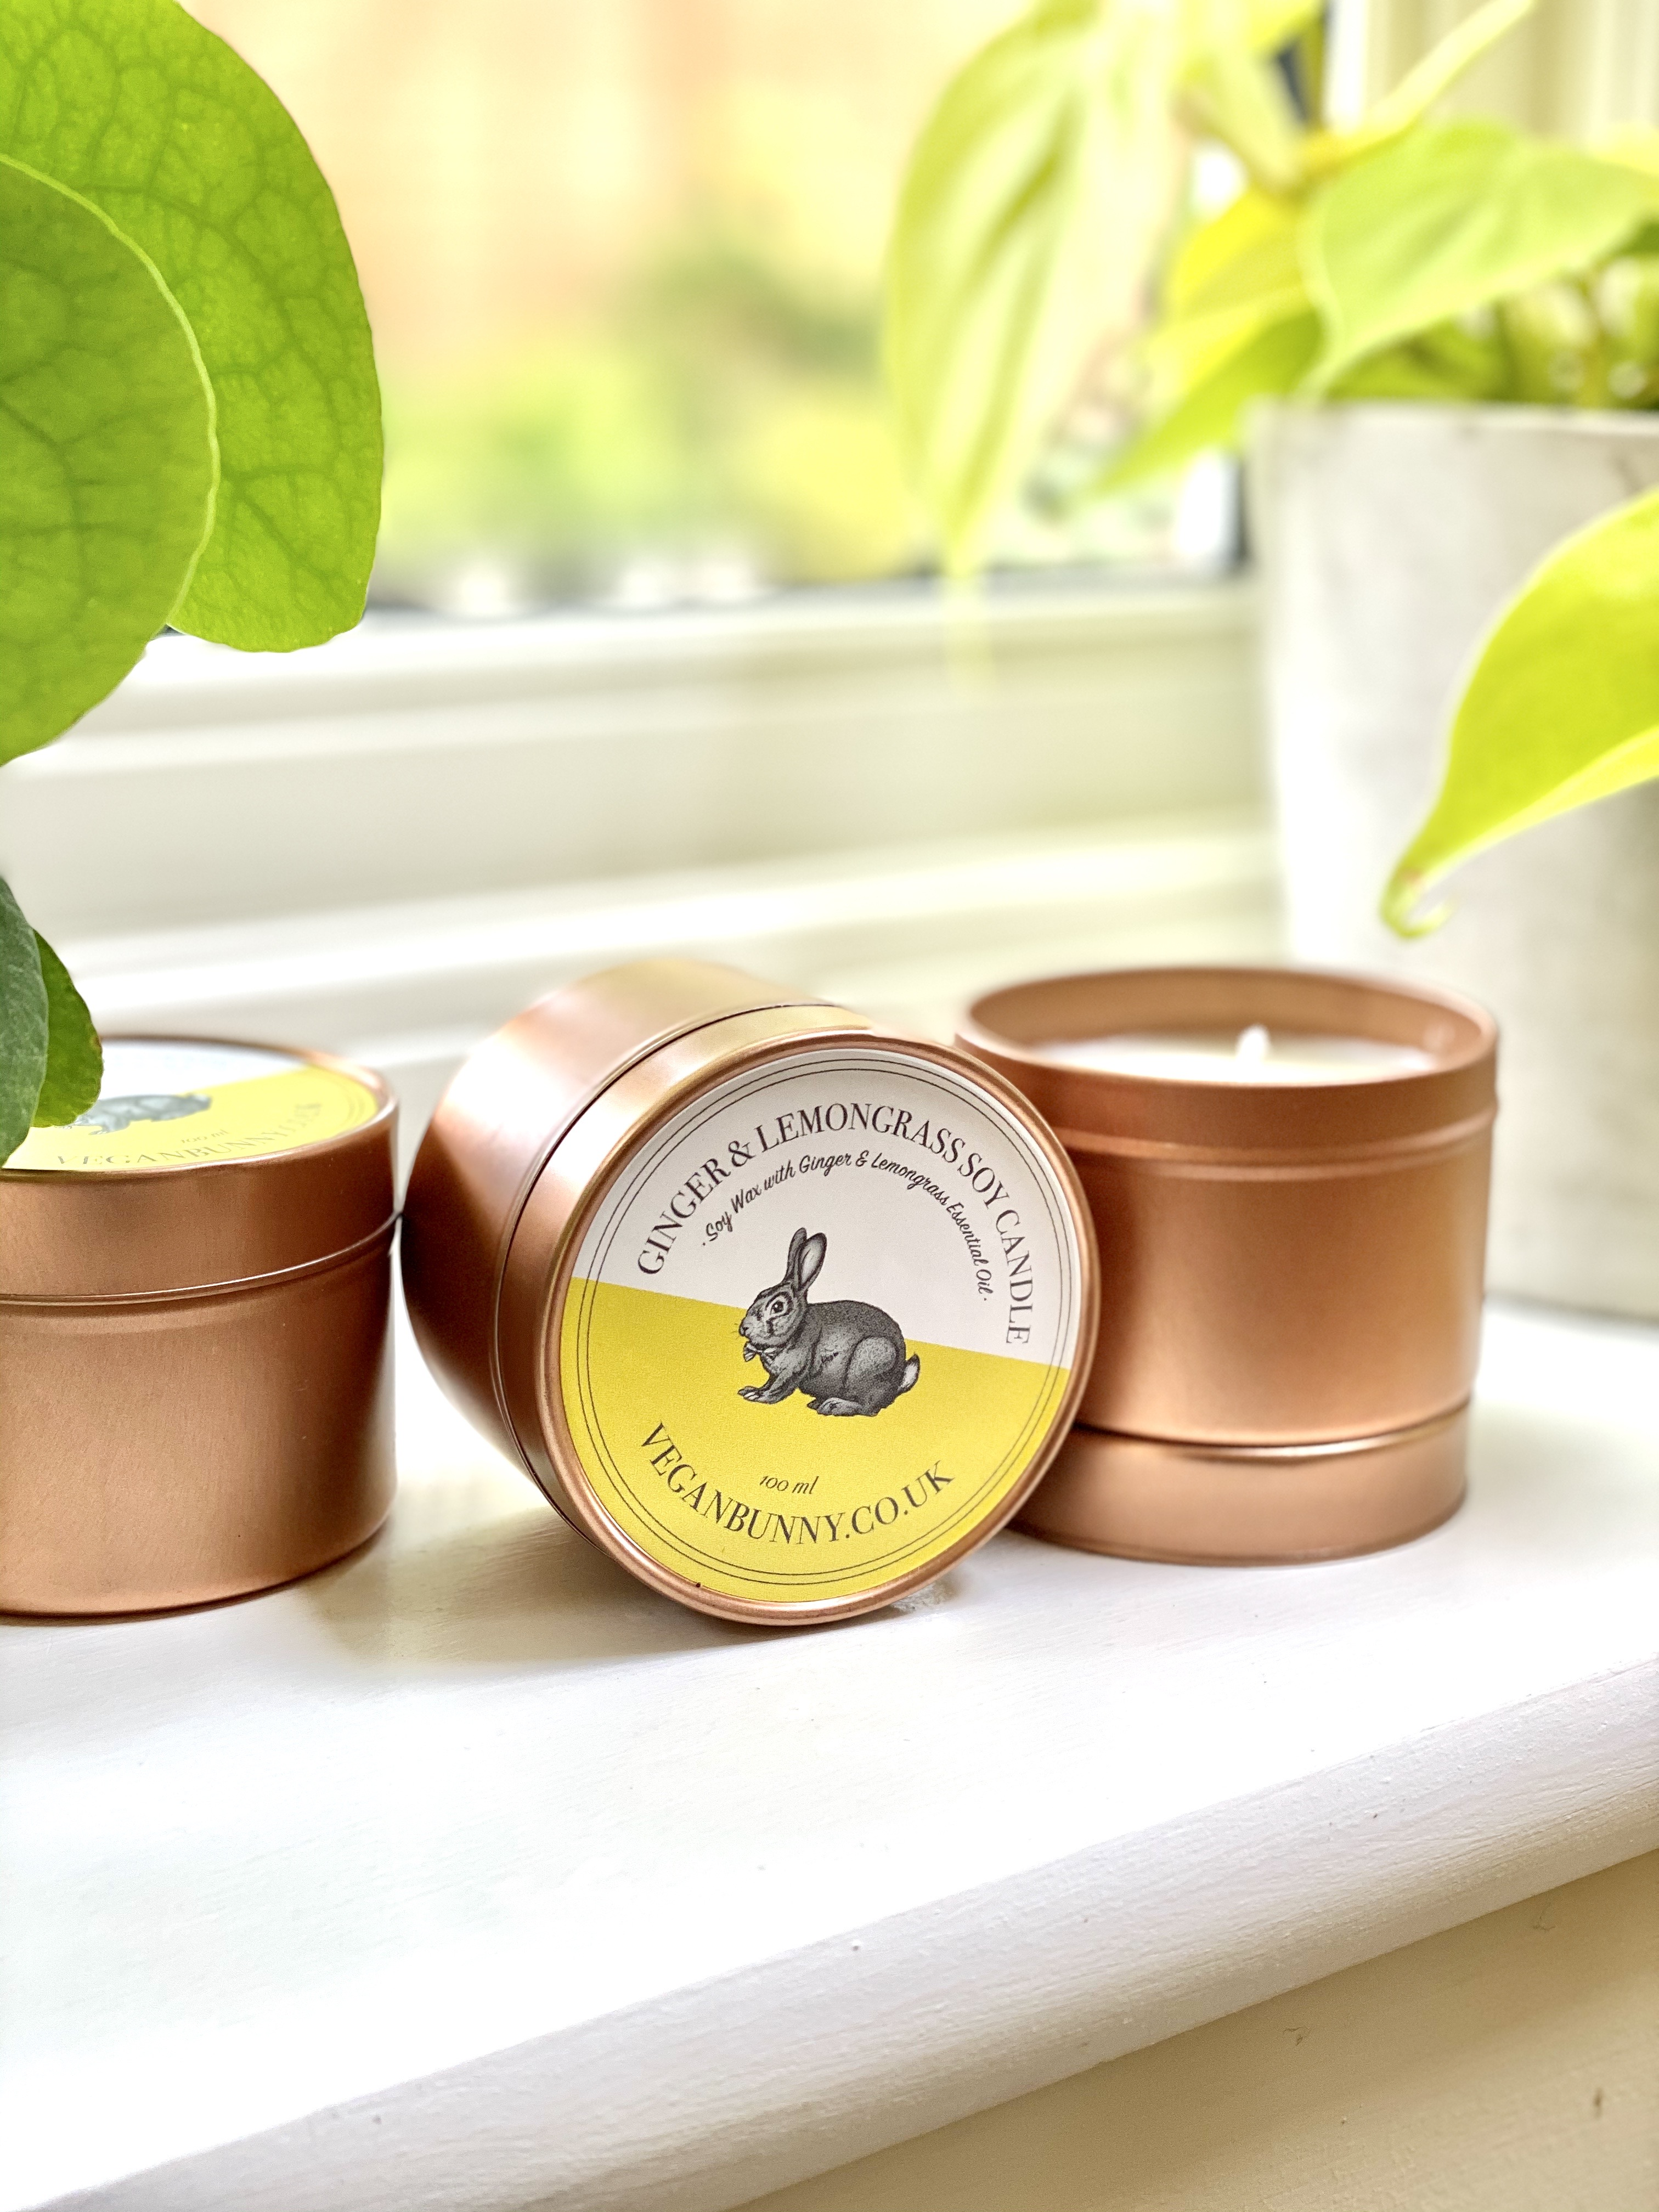 Candles from Vegan Bunny